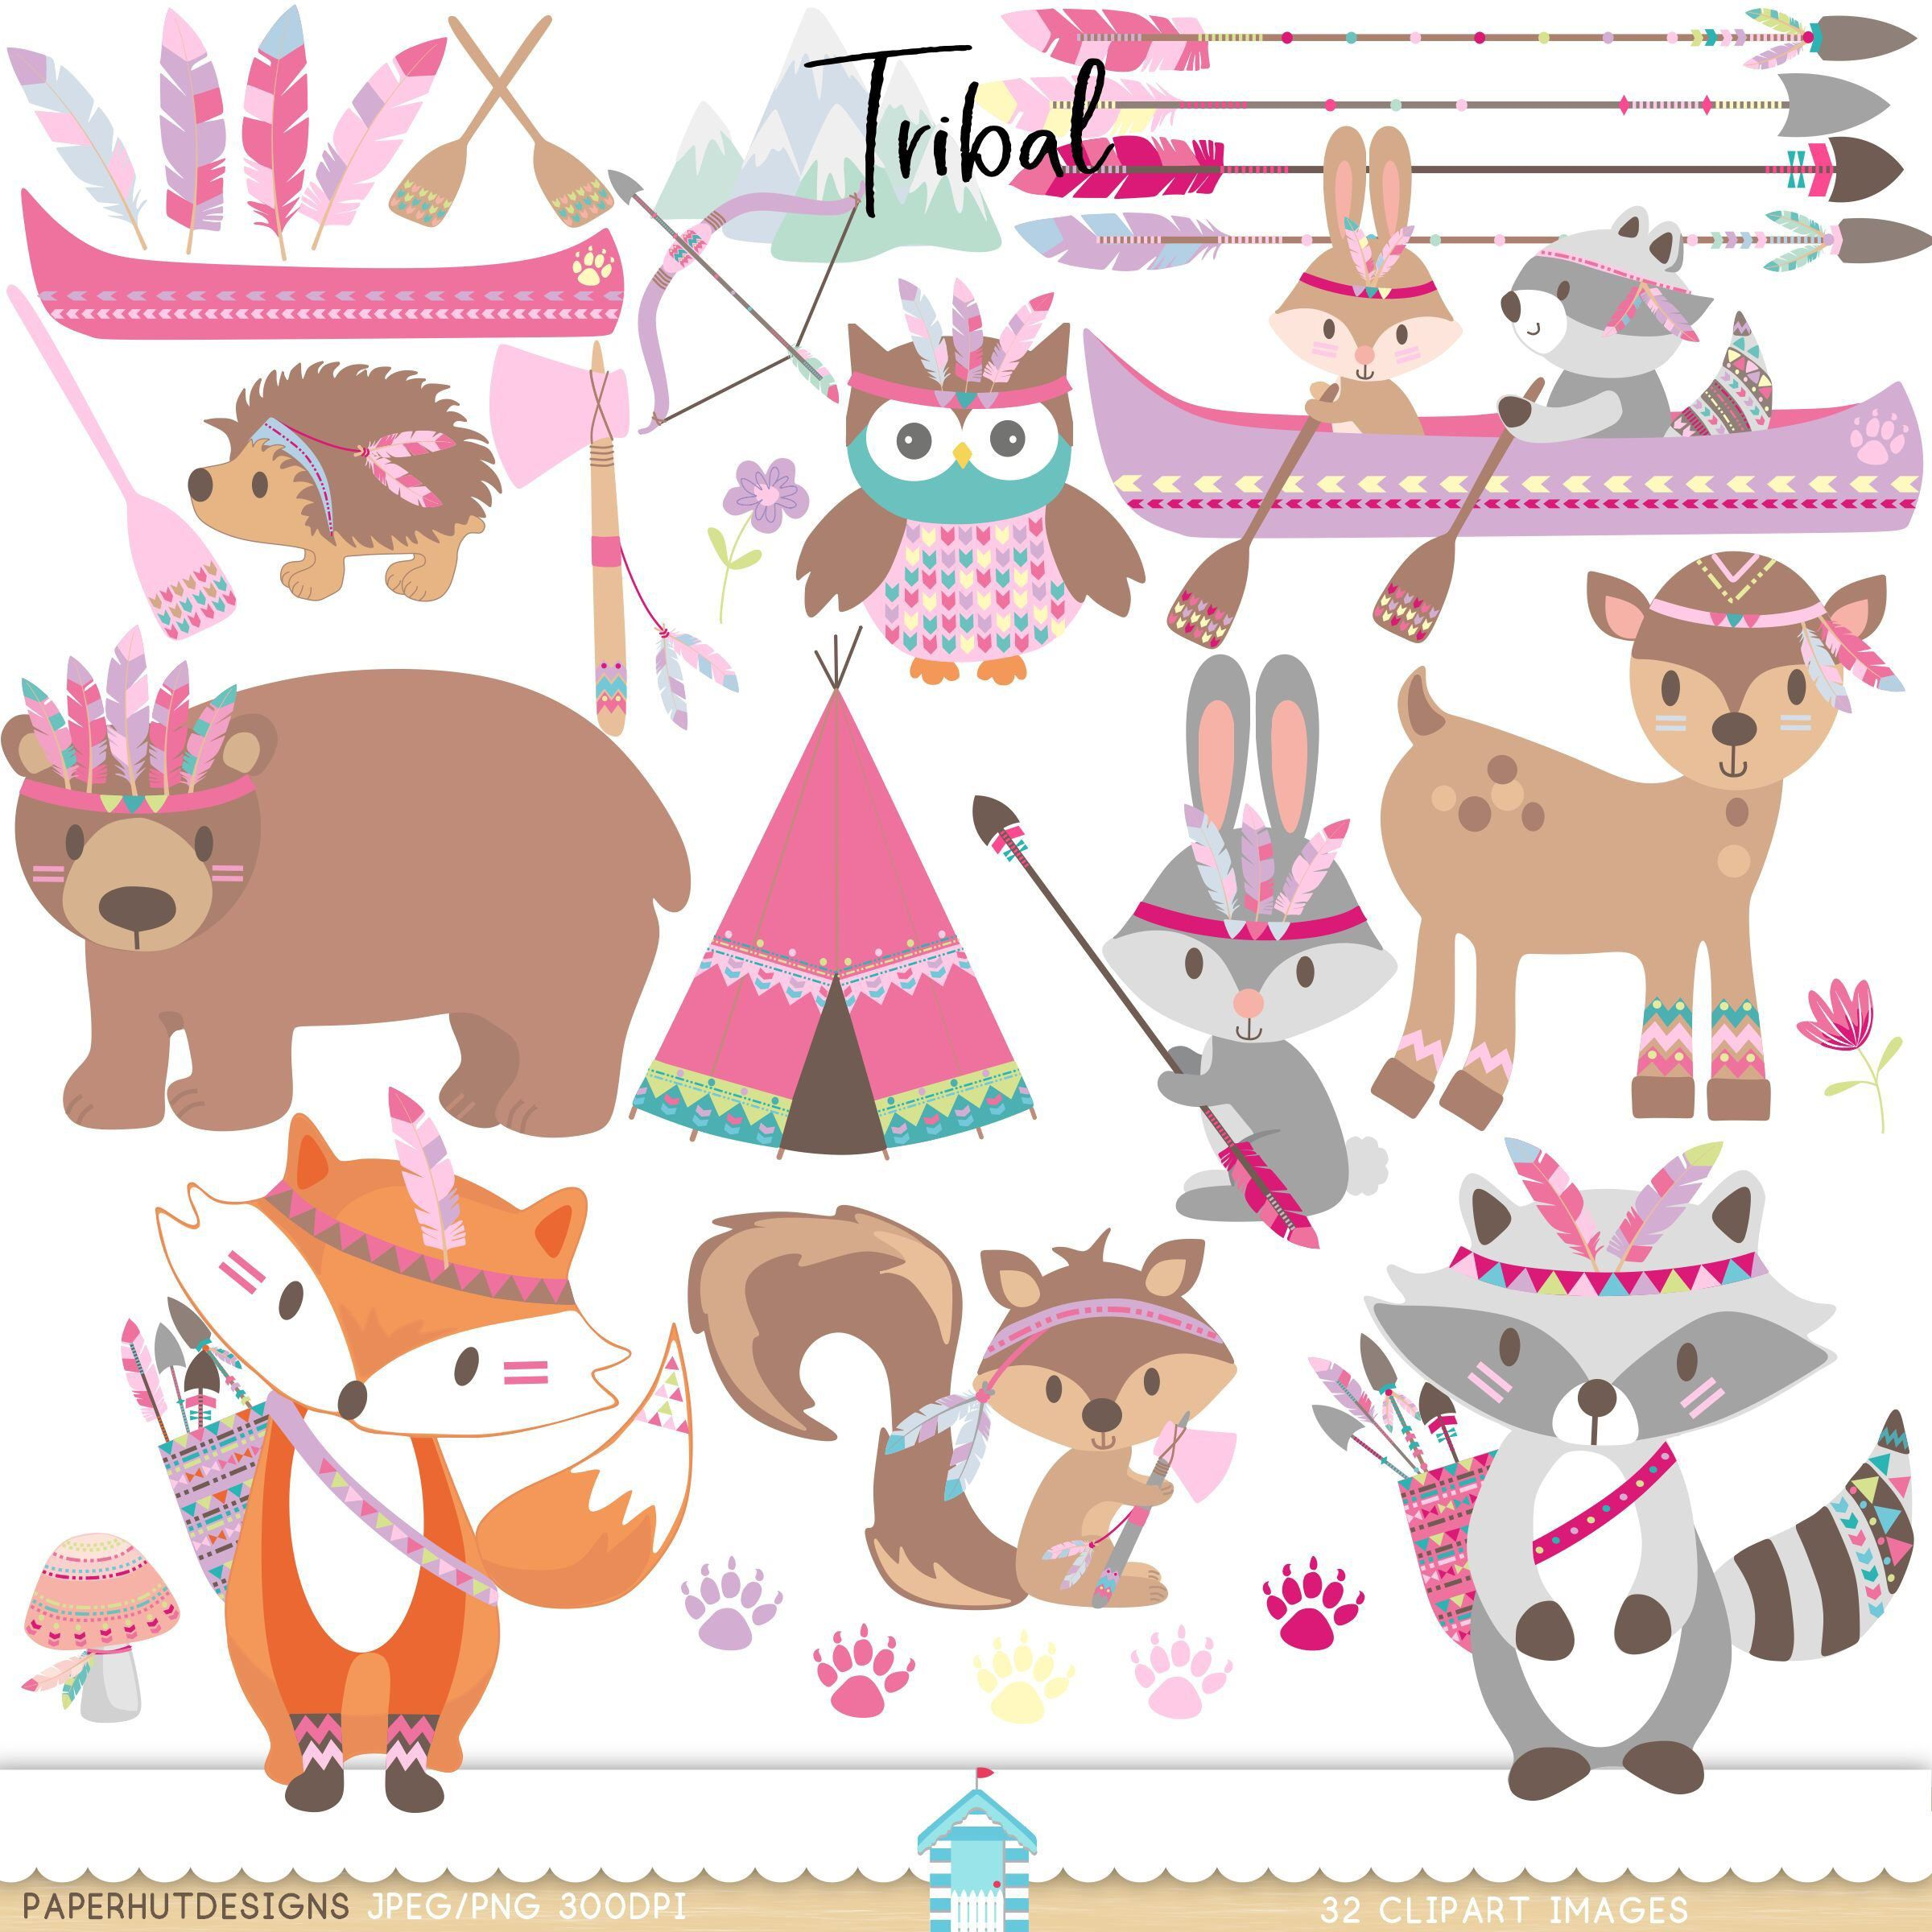 Woodland friends camping clipart image black and white library Girls Tribal Animals Clipart-Woodland Animals Camping Clip ... image black and white library